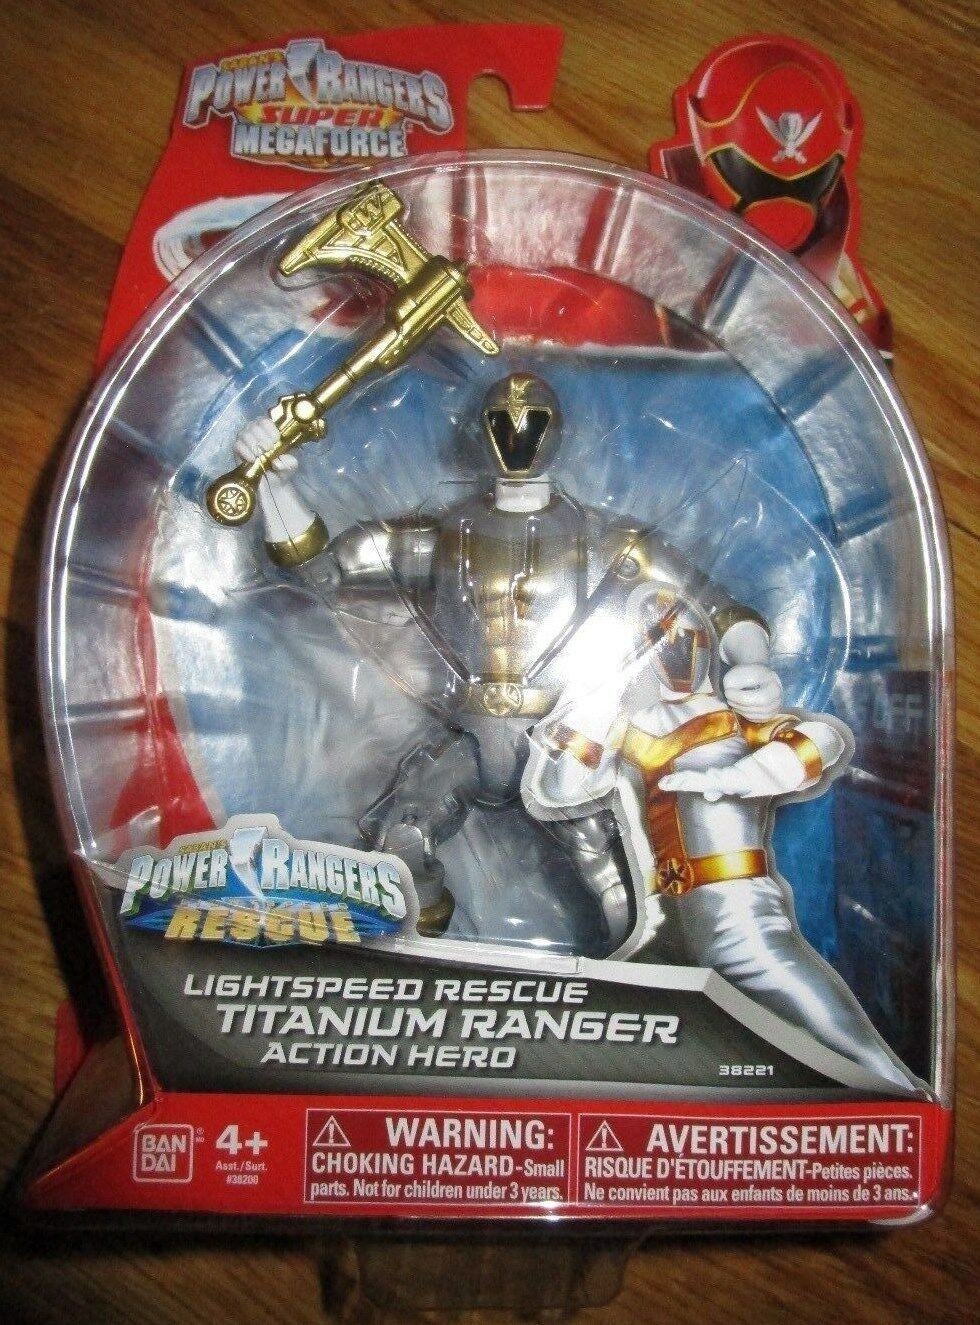 Power rangers super megaforce lightspeed rettungs - titan - ranger 38221 ryan